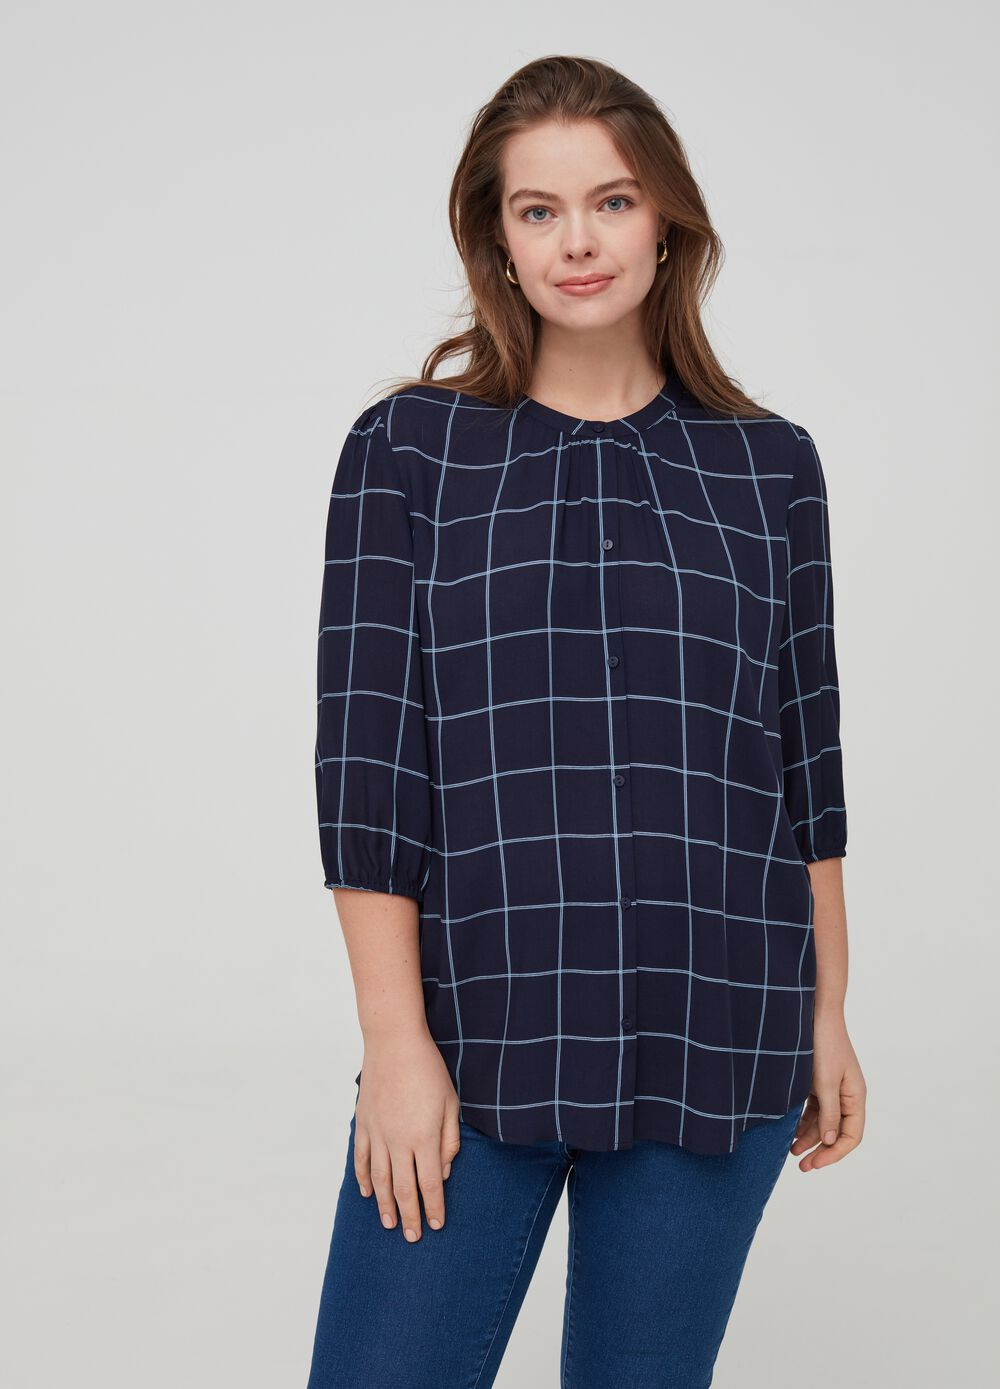 Curvy patterned blouse in 100% viscose